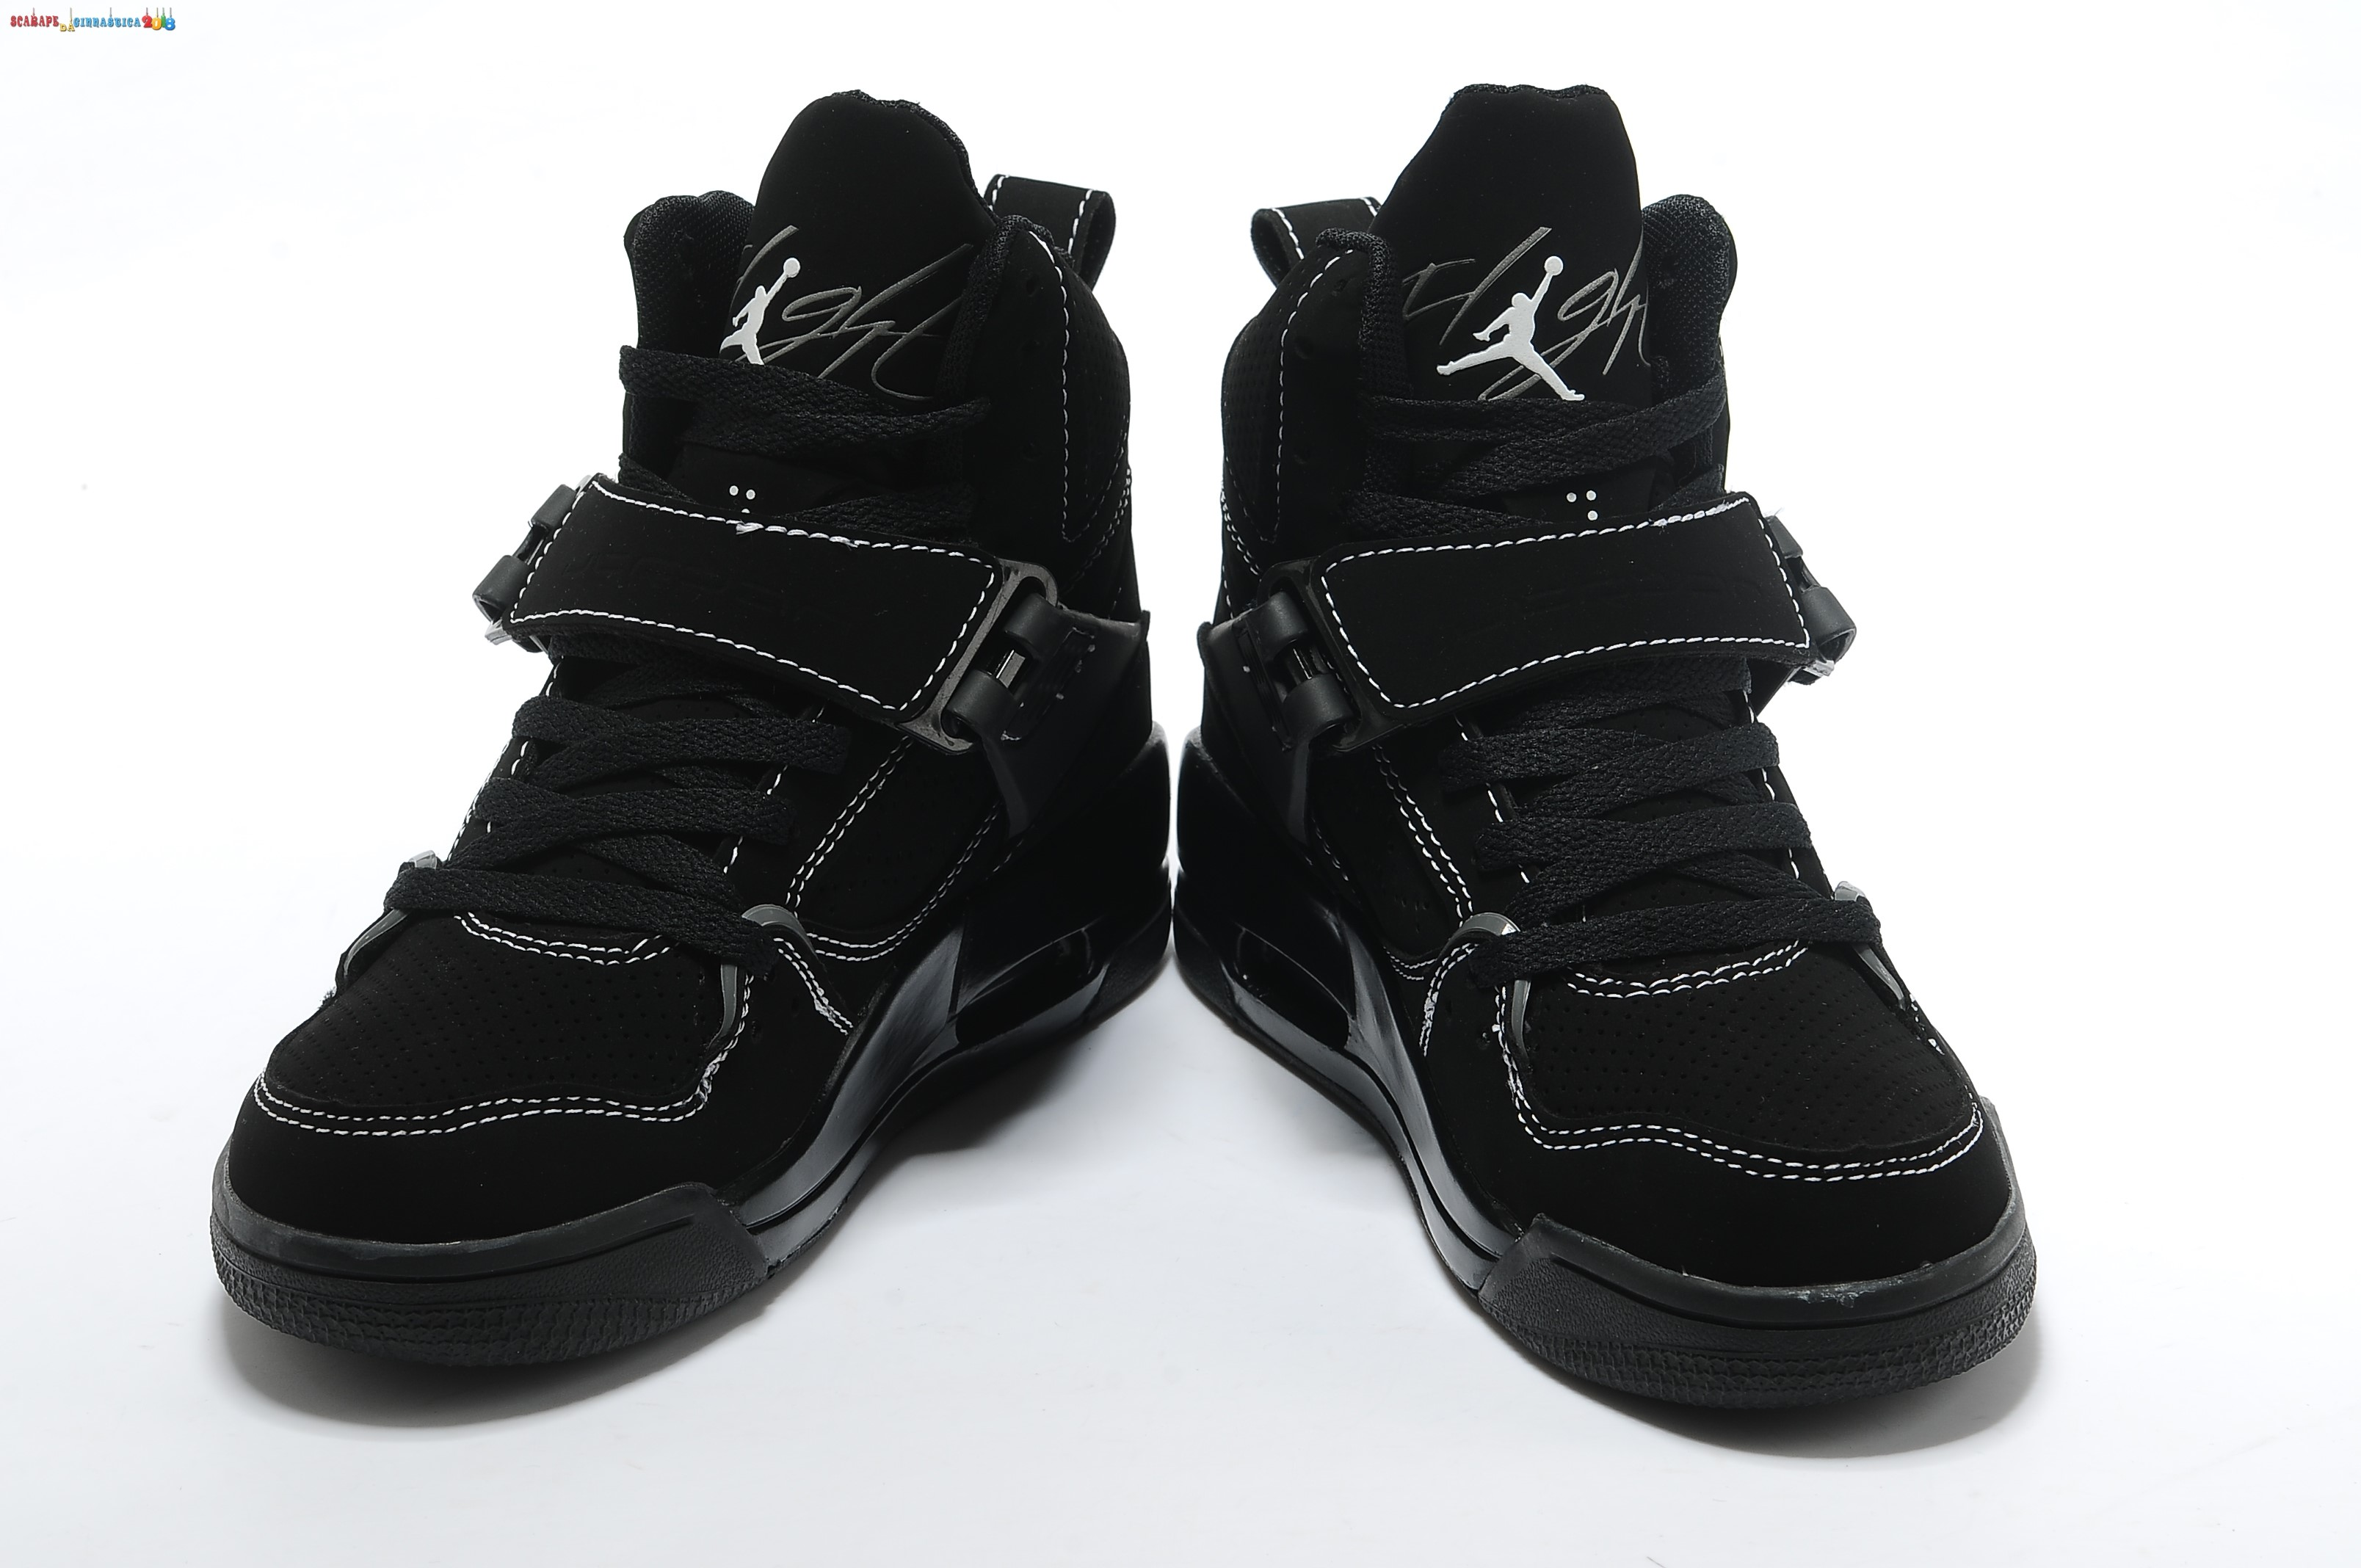 Replica Air Jordan 4.5 Nero - Donna Scarpe sportive